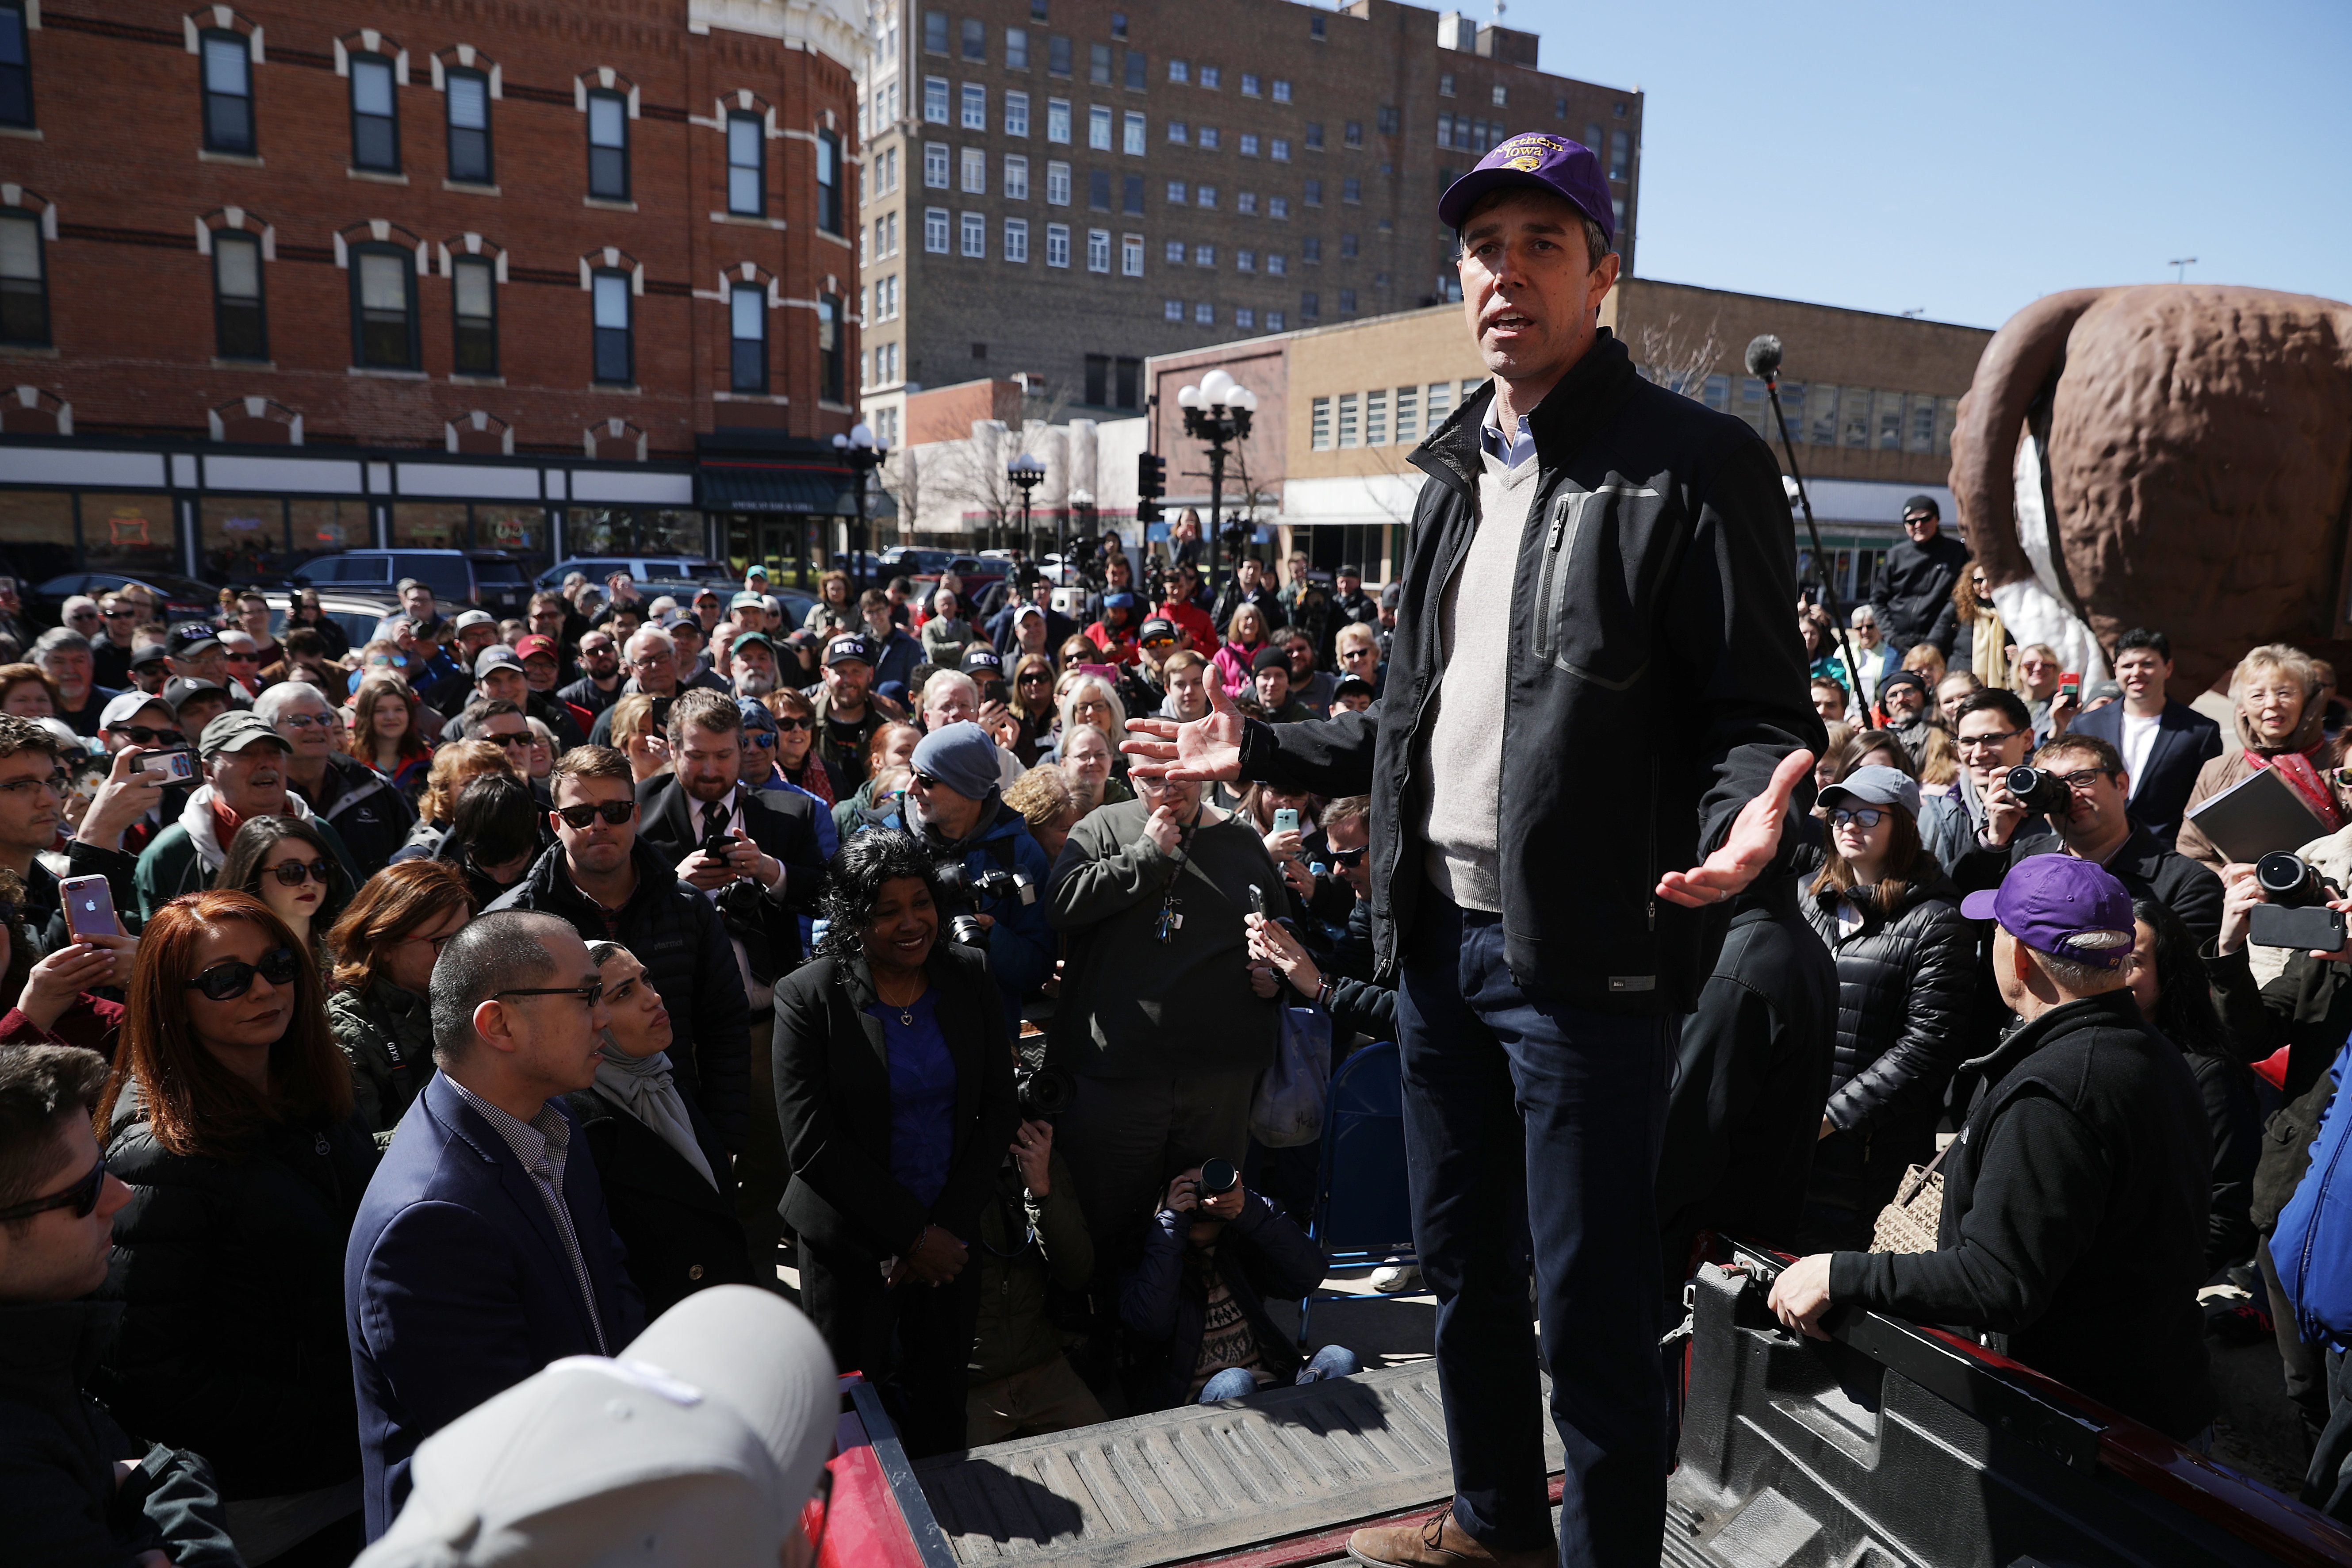 WATERLOO, IOWA - MARCH 16:  Democratic presidential candidate Beto O'Rourke addresses a canvassing kickoff event for Iowa state senate candidate Eric Giddens March 16, 2019 in Waterloo, Iowa. After losing a long-shot race for U.S. Senate to Ted Cruz (R-TX), the 46-year-old O'Rourke is making his first campaign swing through Iowa after jumping into a crowded Democratic field this week. (Photo by Chip Somodevilla/Getty Images)